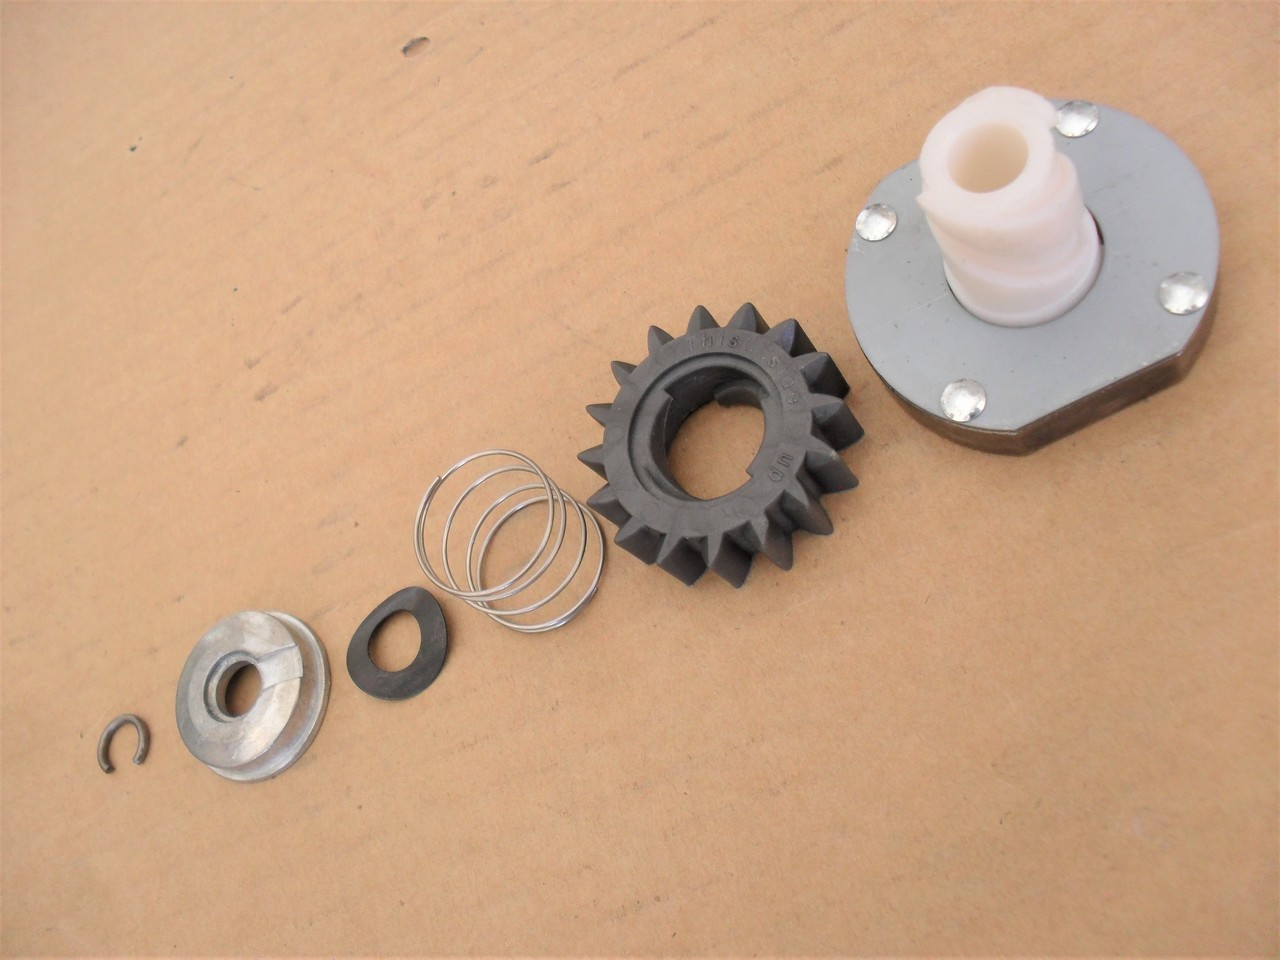 Electric Starter Drive Gear Rebuild Kit for Briggs and Stratton 497606, 696541